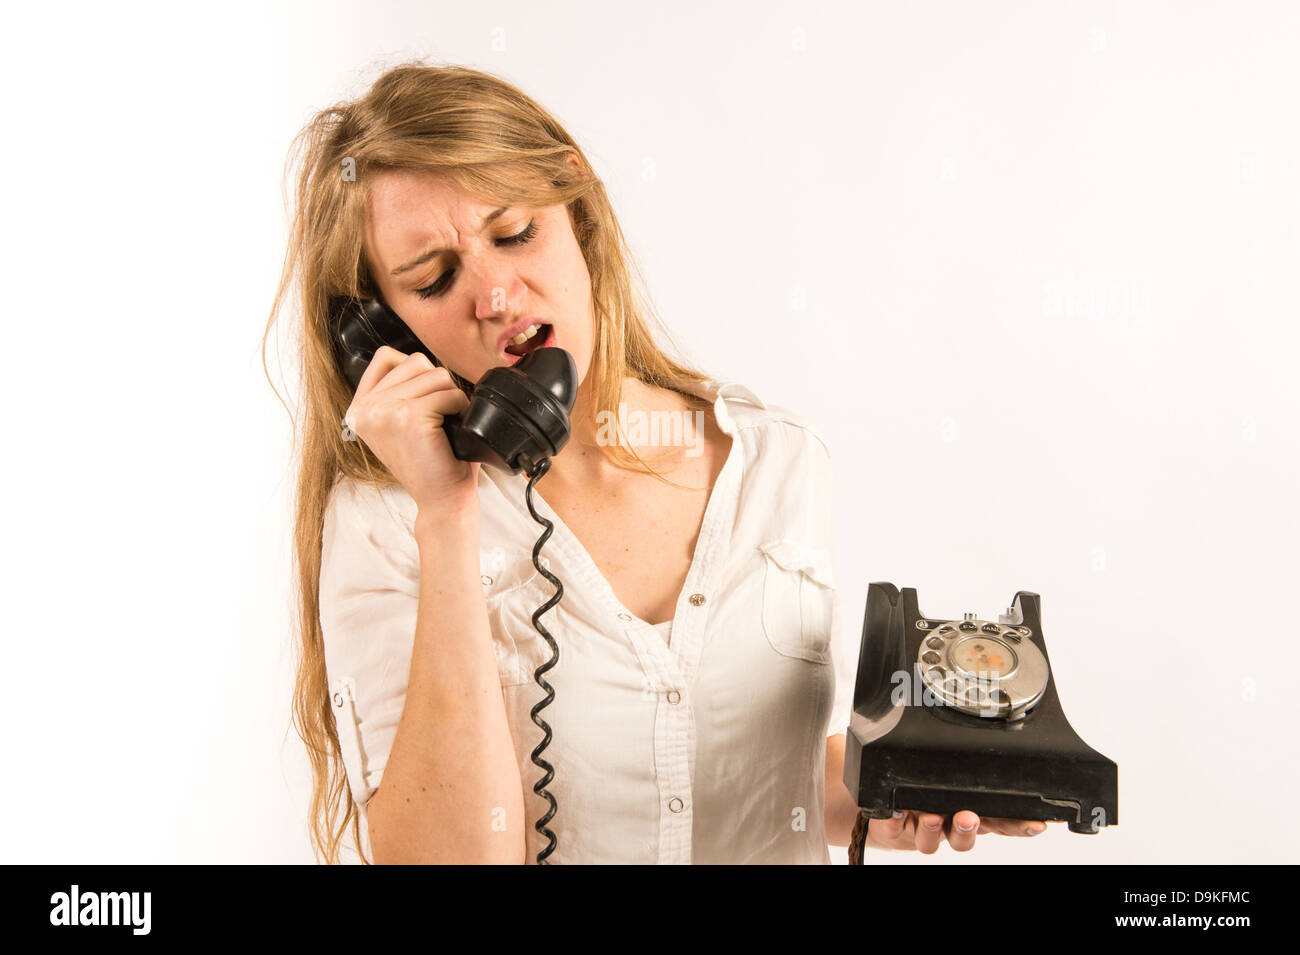 Poor customer service: An angry young woman shouting yelling into an old retro telephone receiver - Stock Image